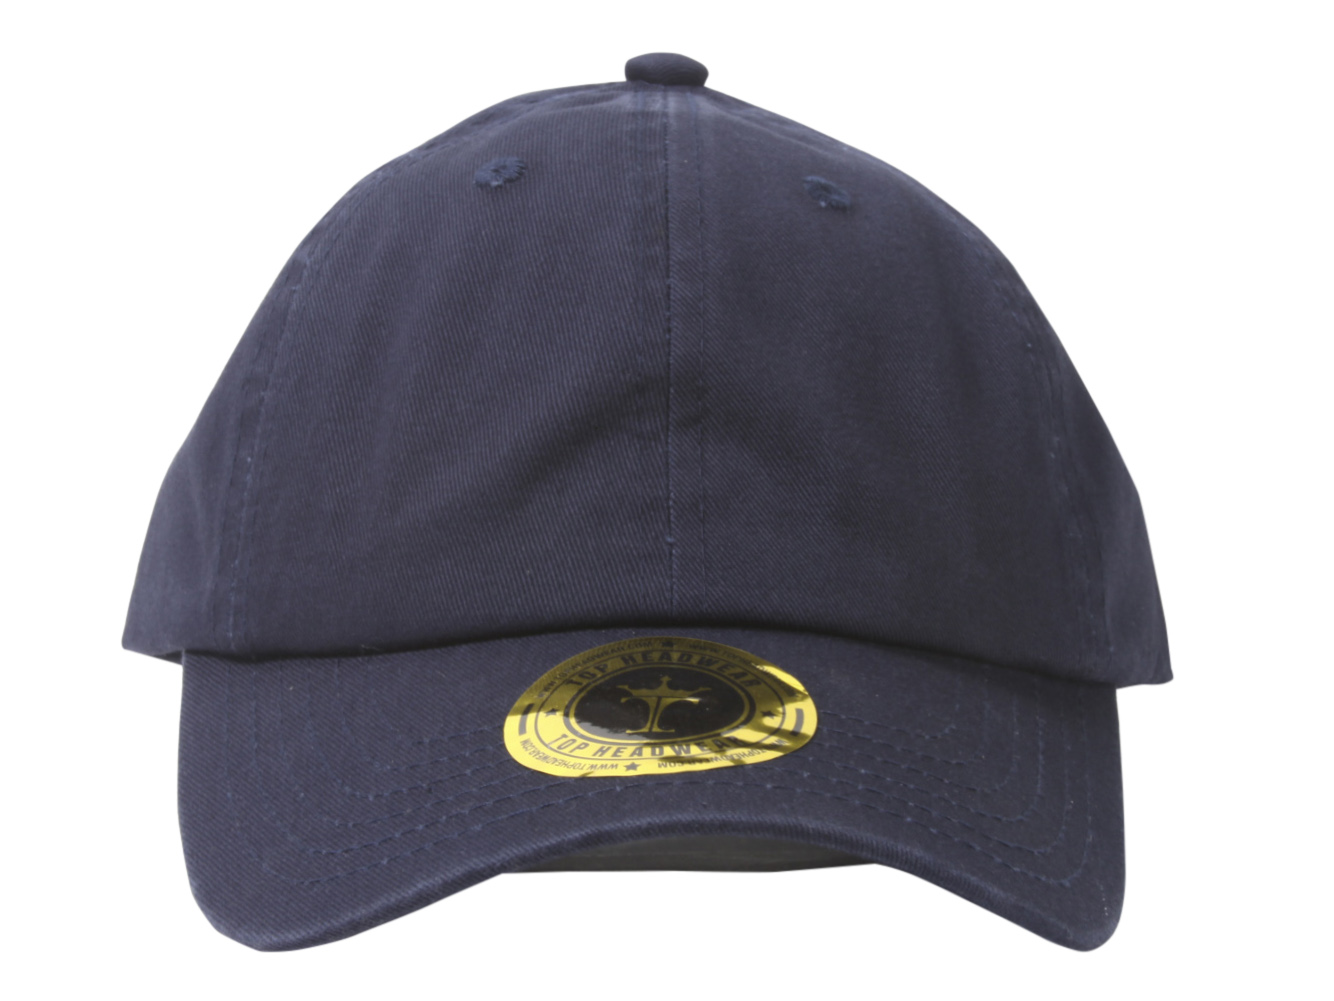 Low-Profile-Dyed-Cotton-Twill-Cap thumbnail 13